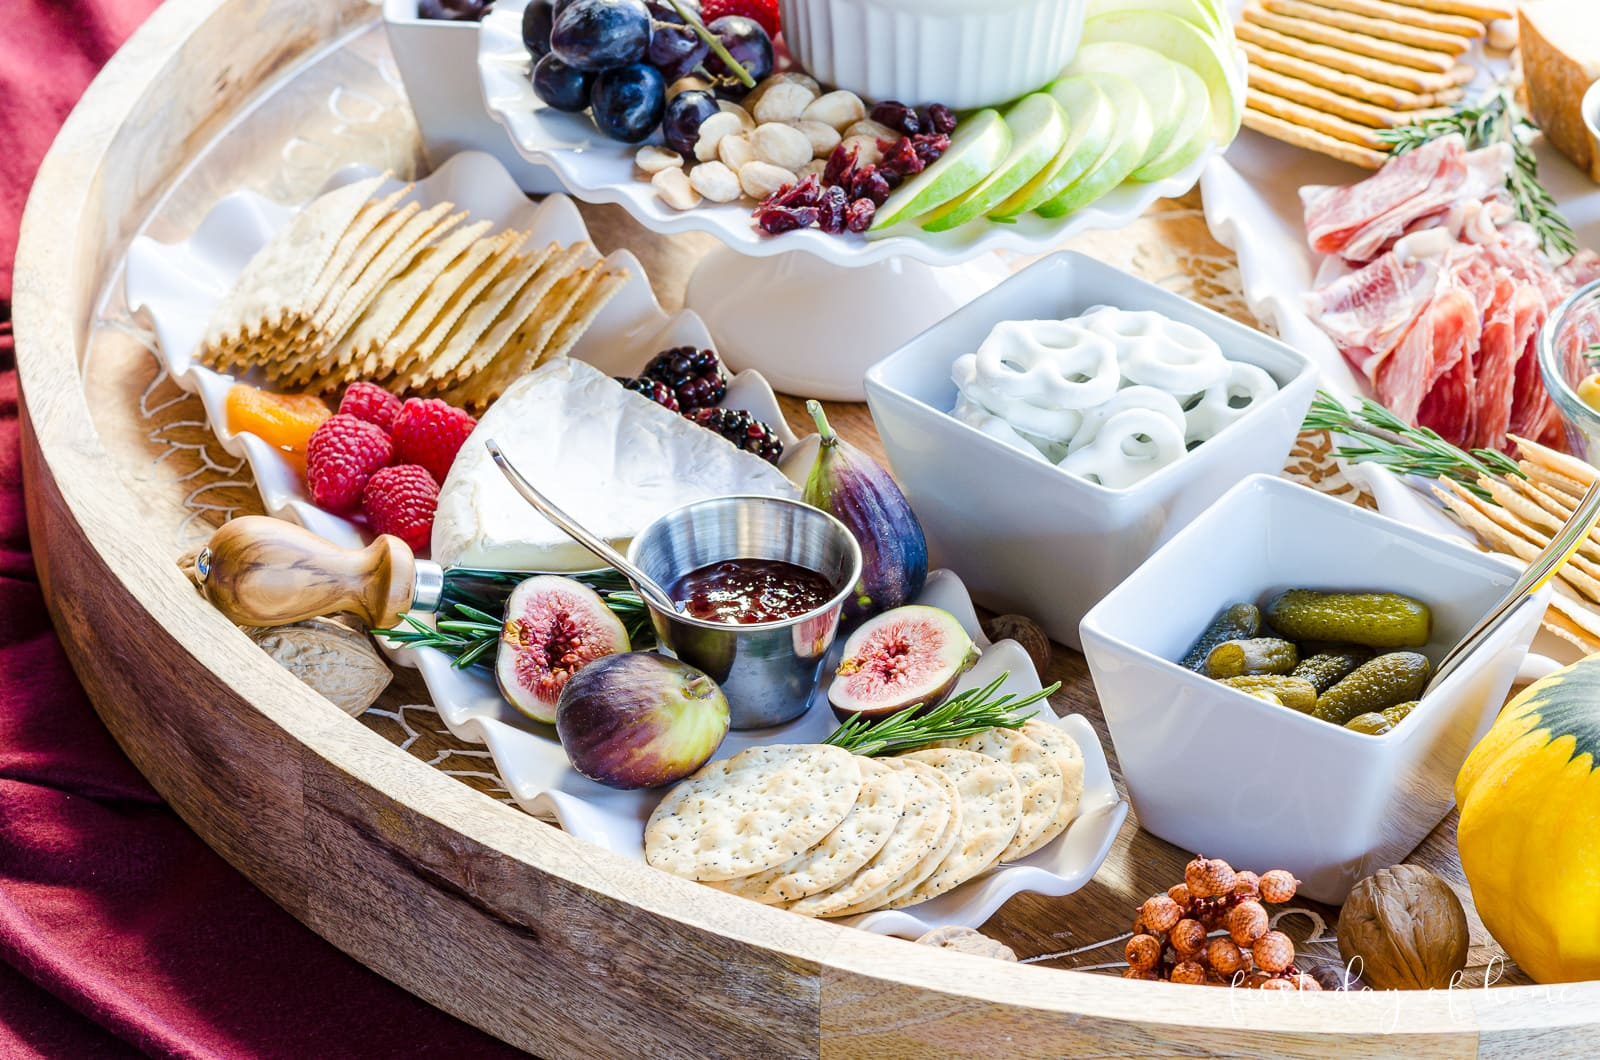 Charcuterie board tray with figs, nuts, pretzels, cornichons and other savory snacks